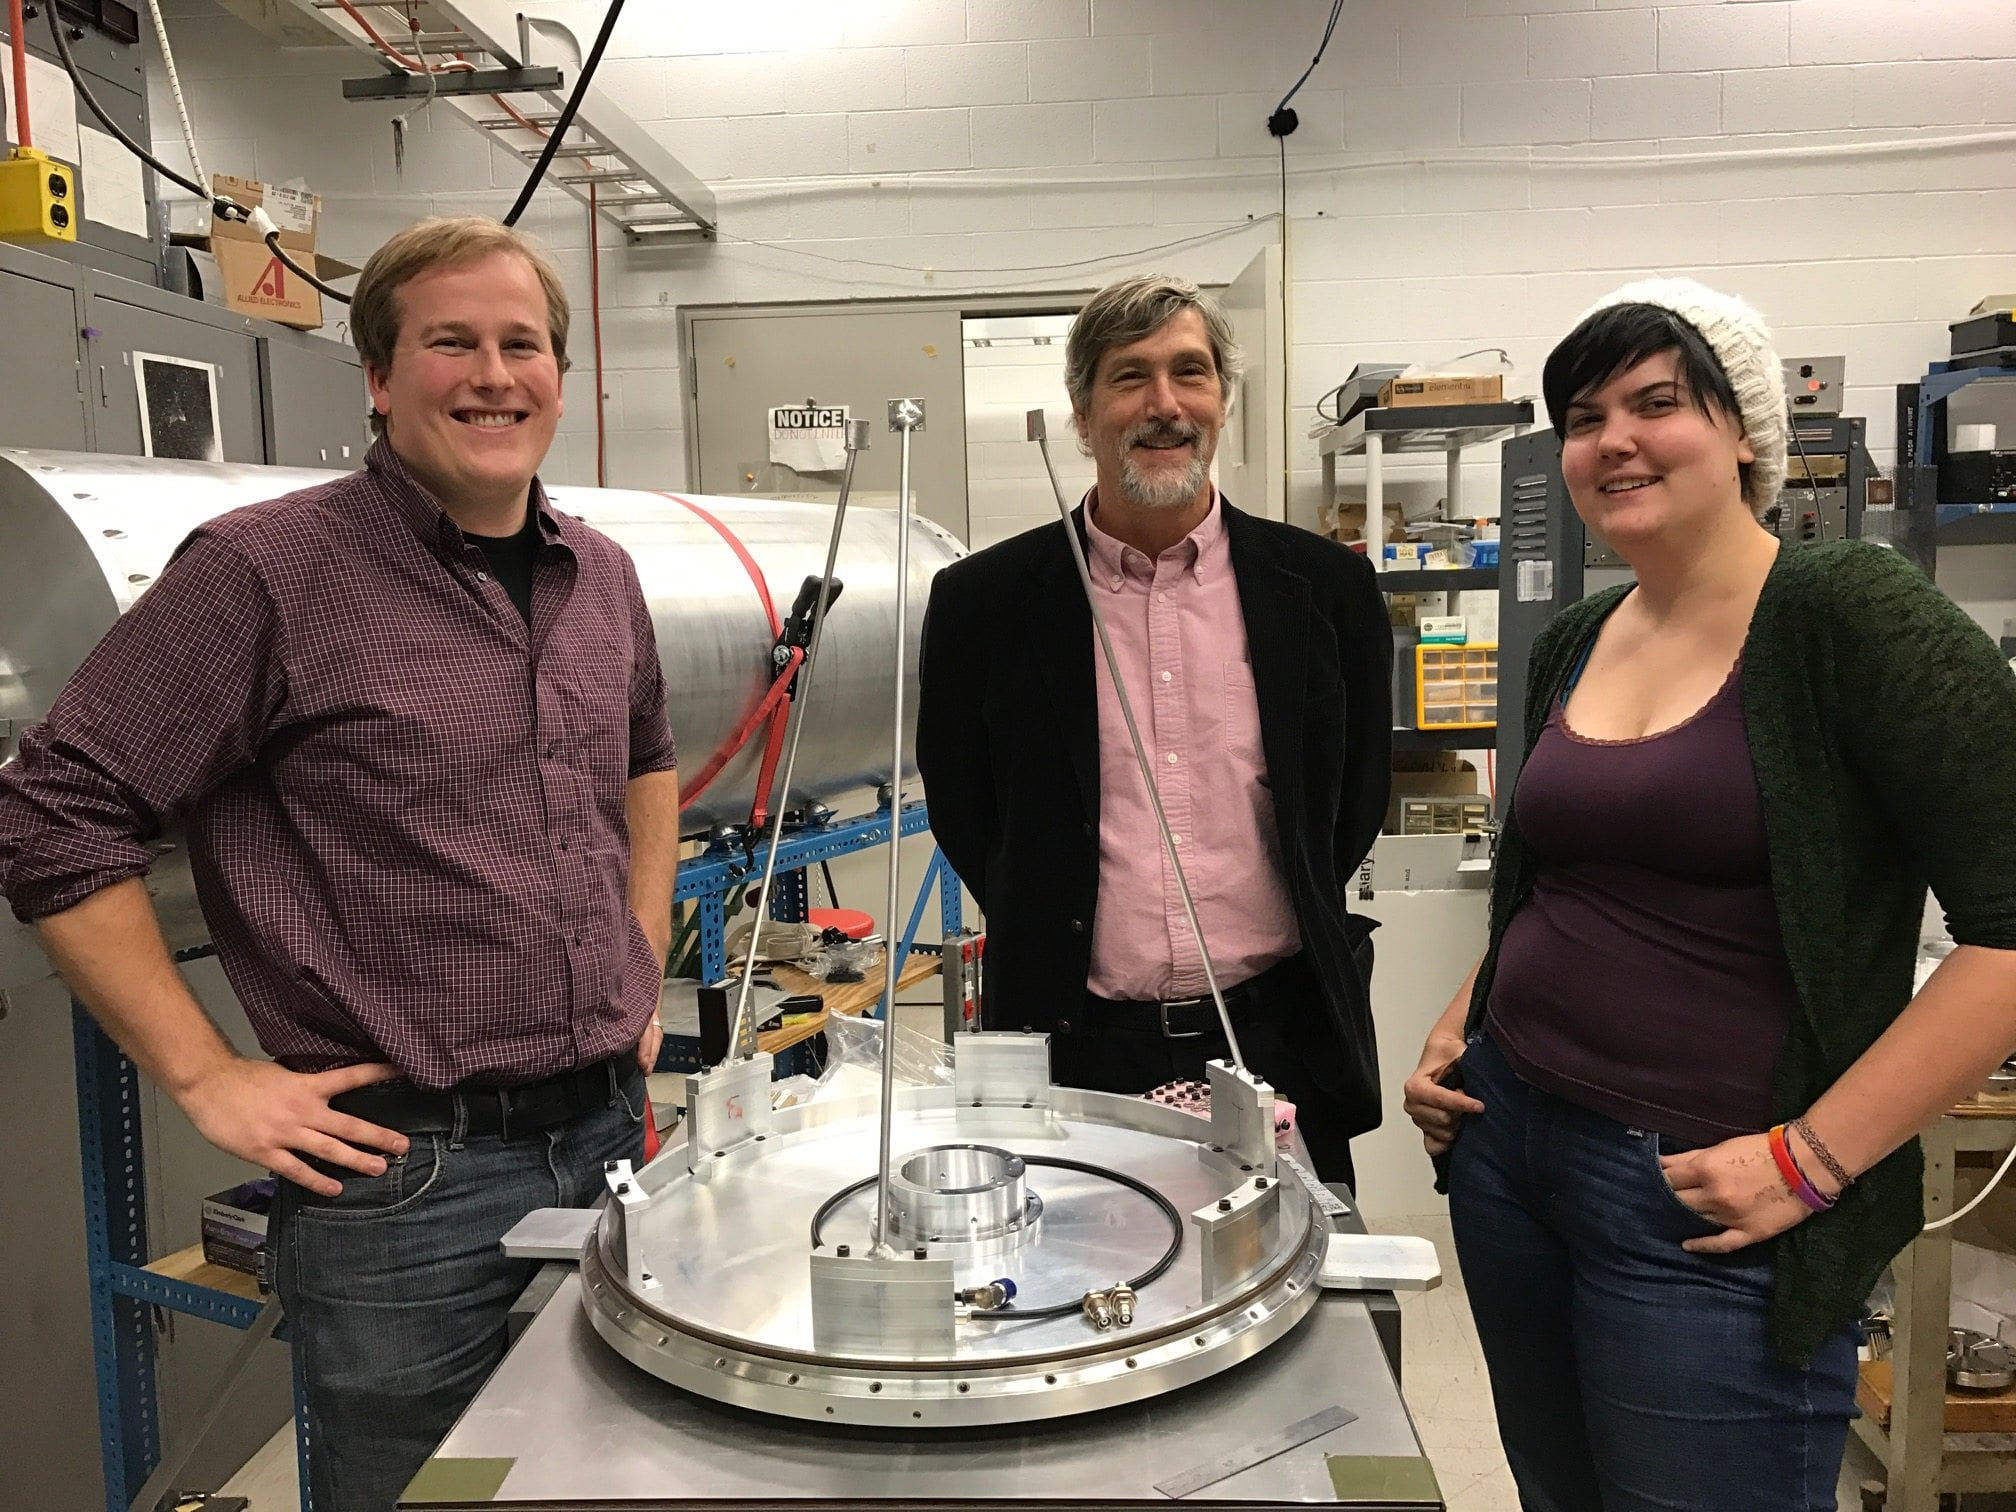 Stephan McCandliss and team awarded Astrophysics Research Analysis Grant